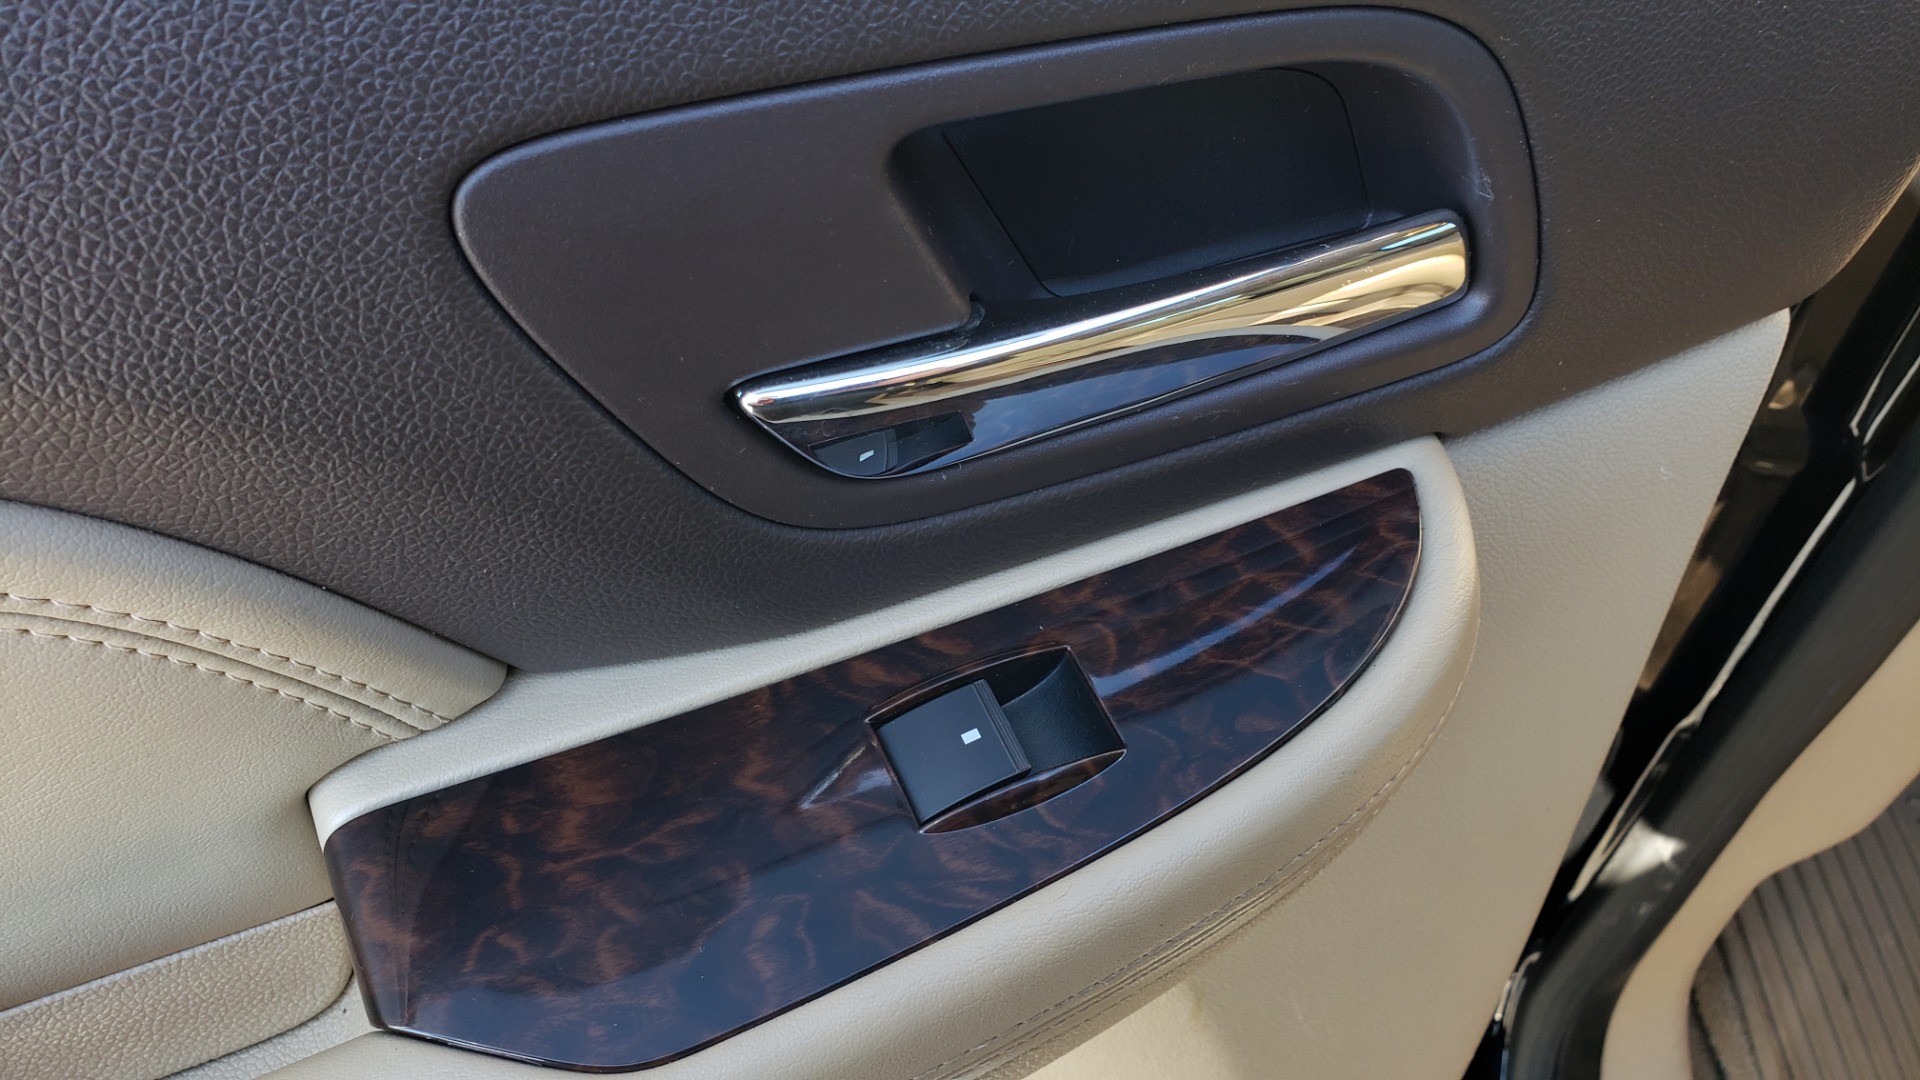 Used 2013 GMC YUKON XL DENALI / AWD / NAV / SUNROOF / 3-ROW / ENTERTAINMENT for sale Sold at Formula Imports in Charlotte NC 28227 60